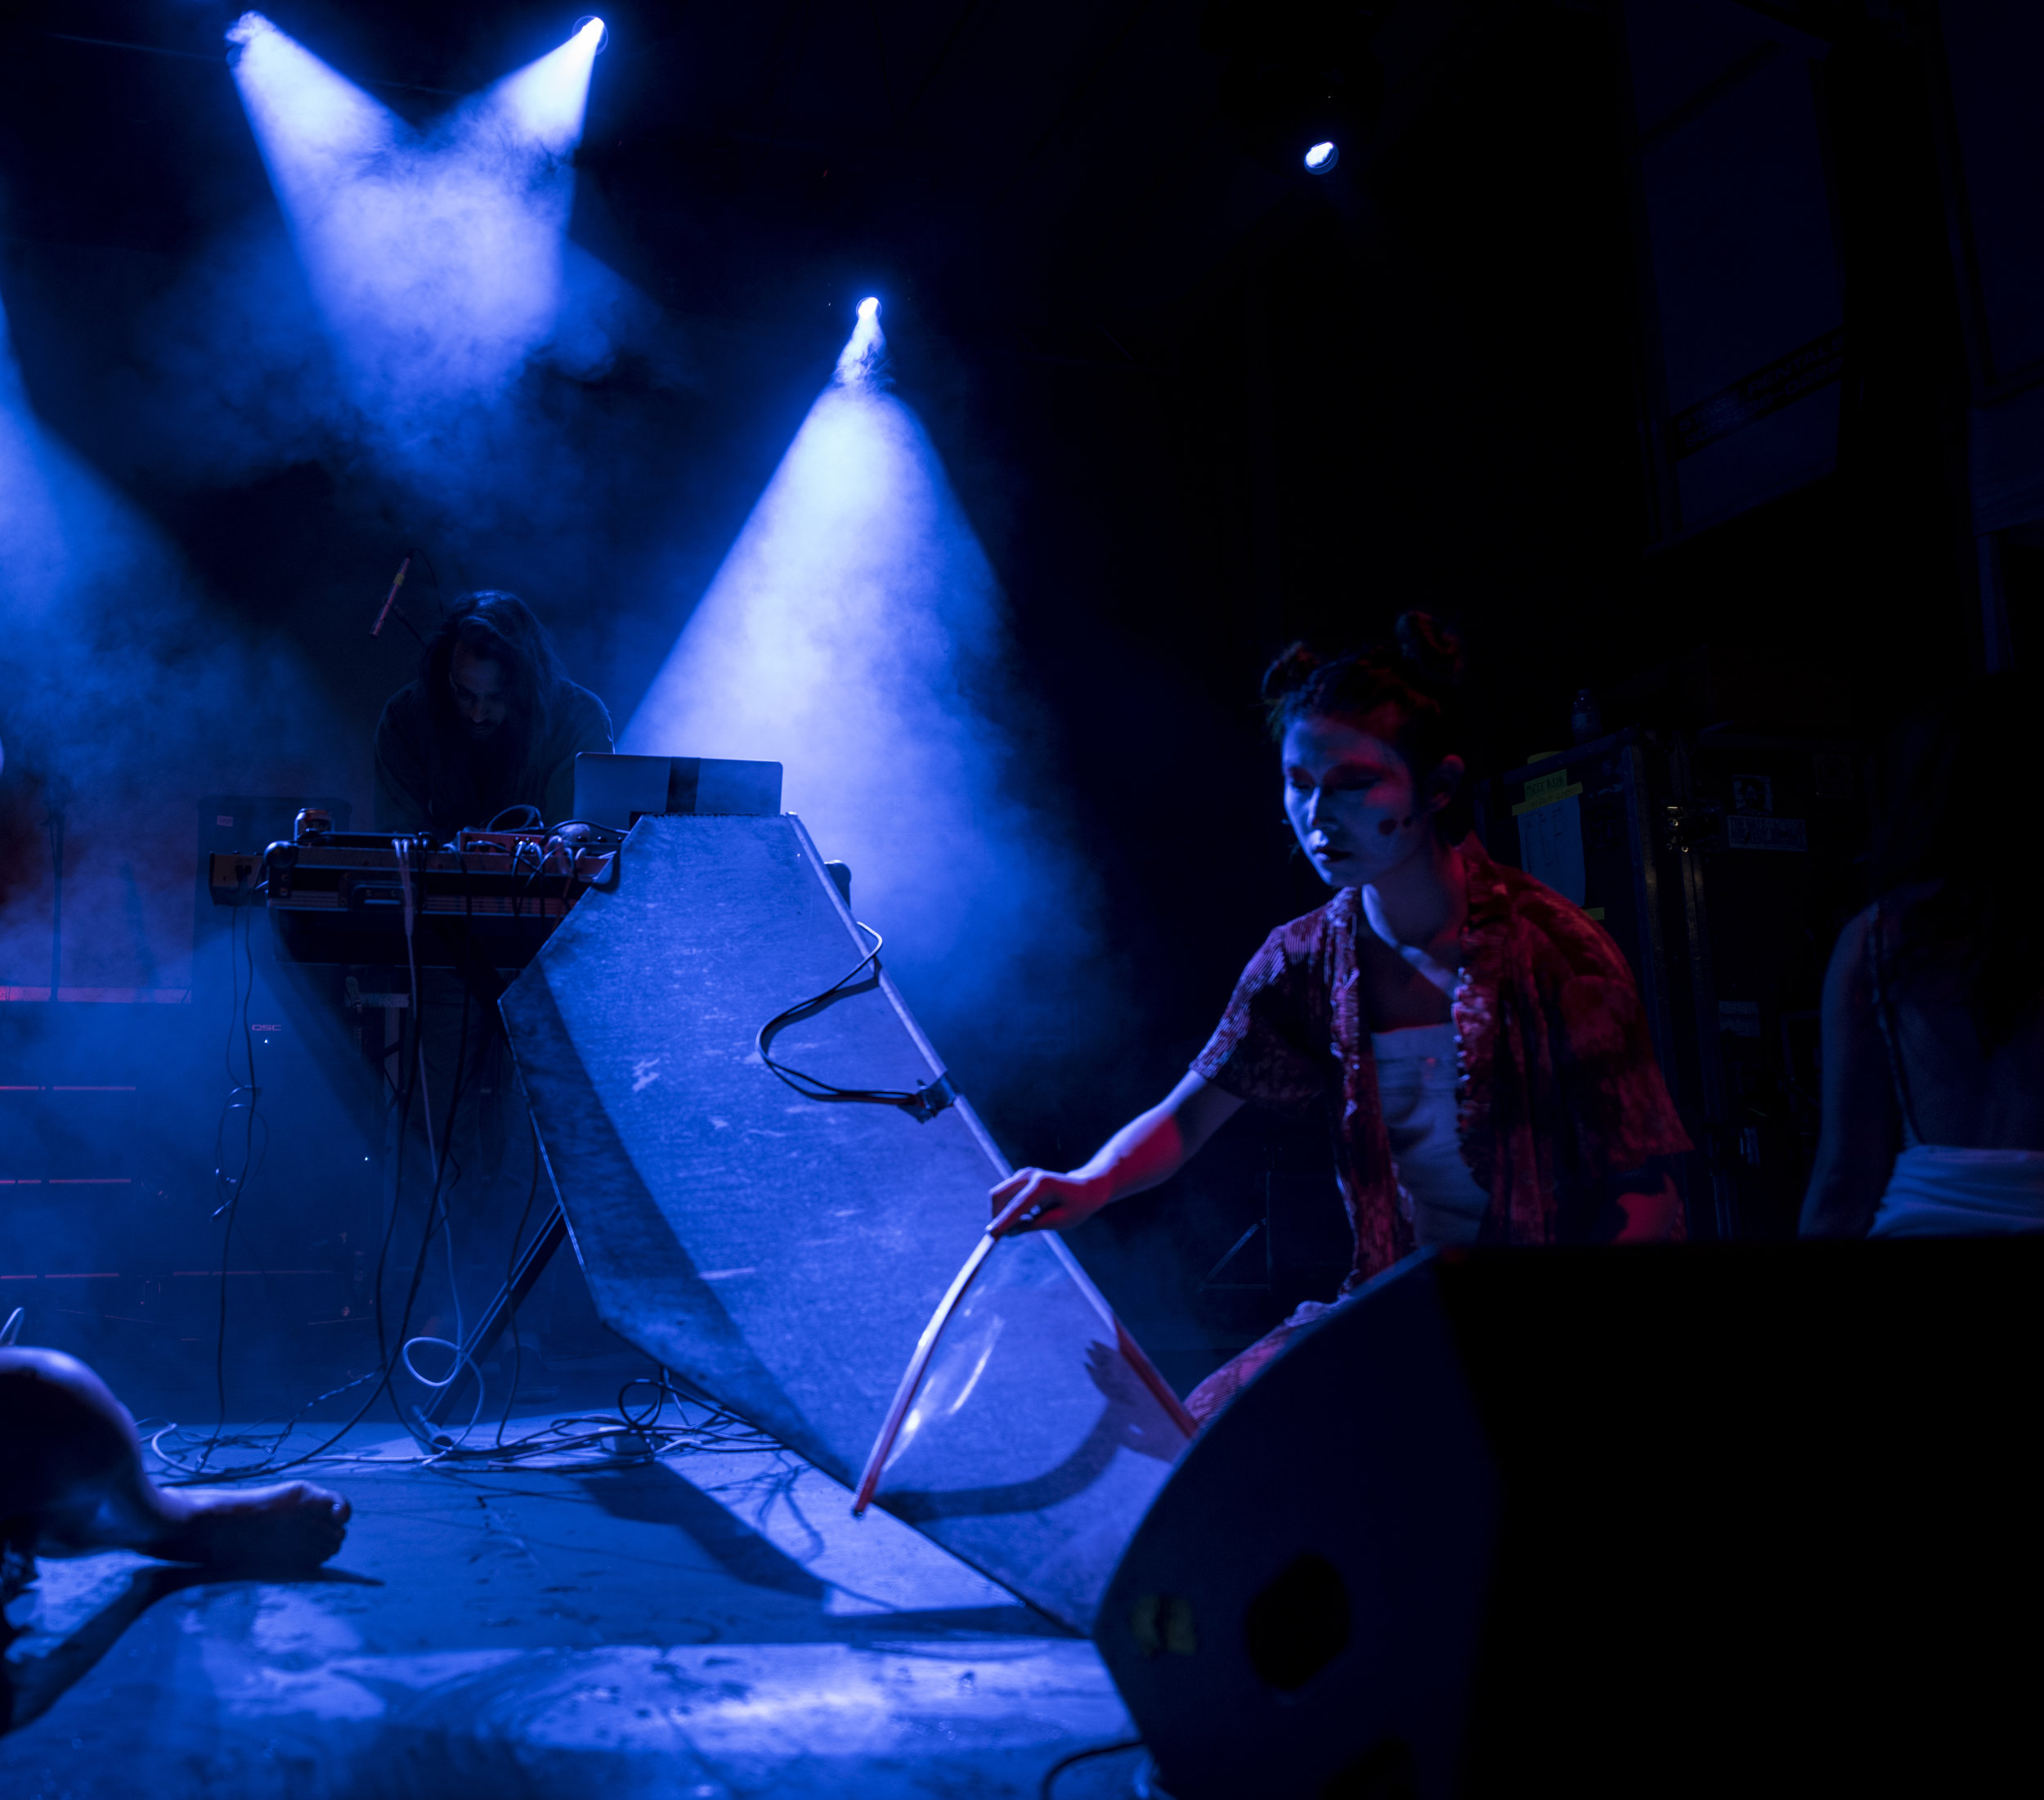 MELTASIA MUSIC FESTIVAL  (Sound & Dance, 2016)  The collaborative sound performance included voice, live sampling, death cry whistles, and contact microphones placed onto a piece of found sheet metal.